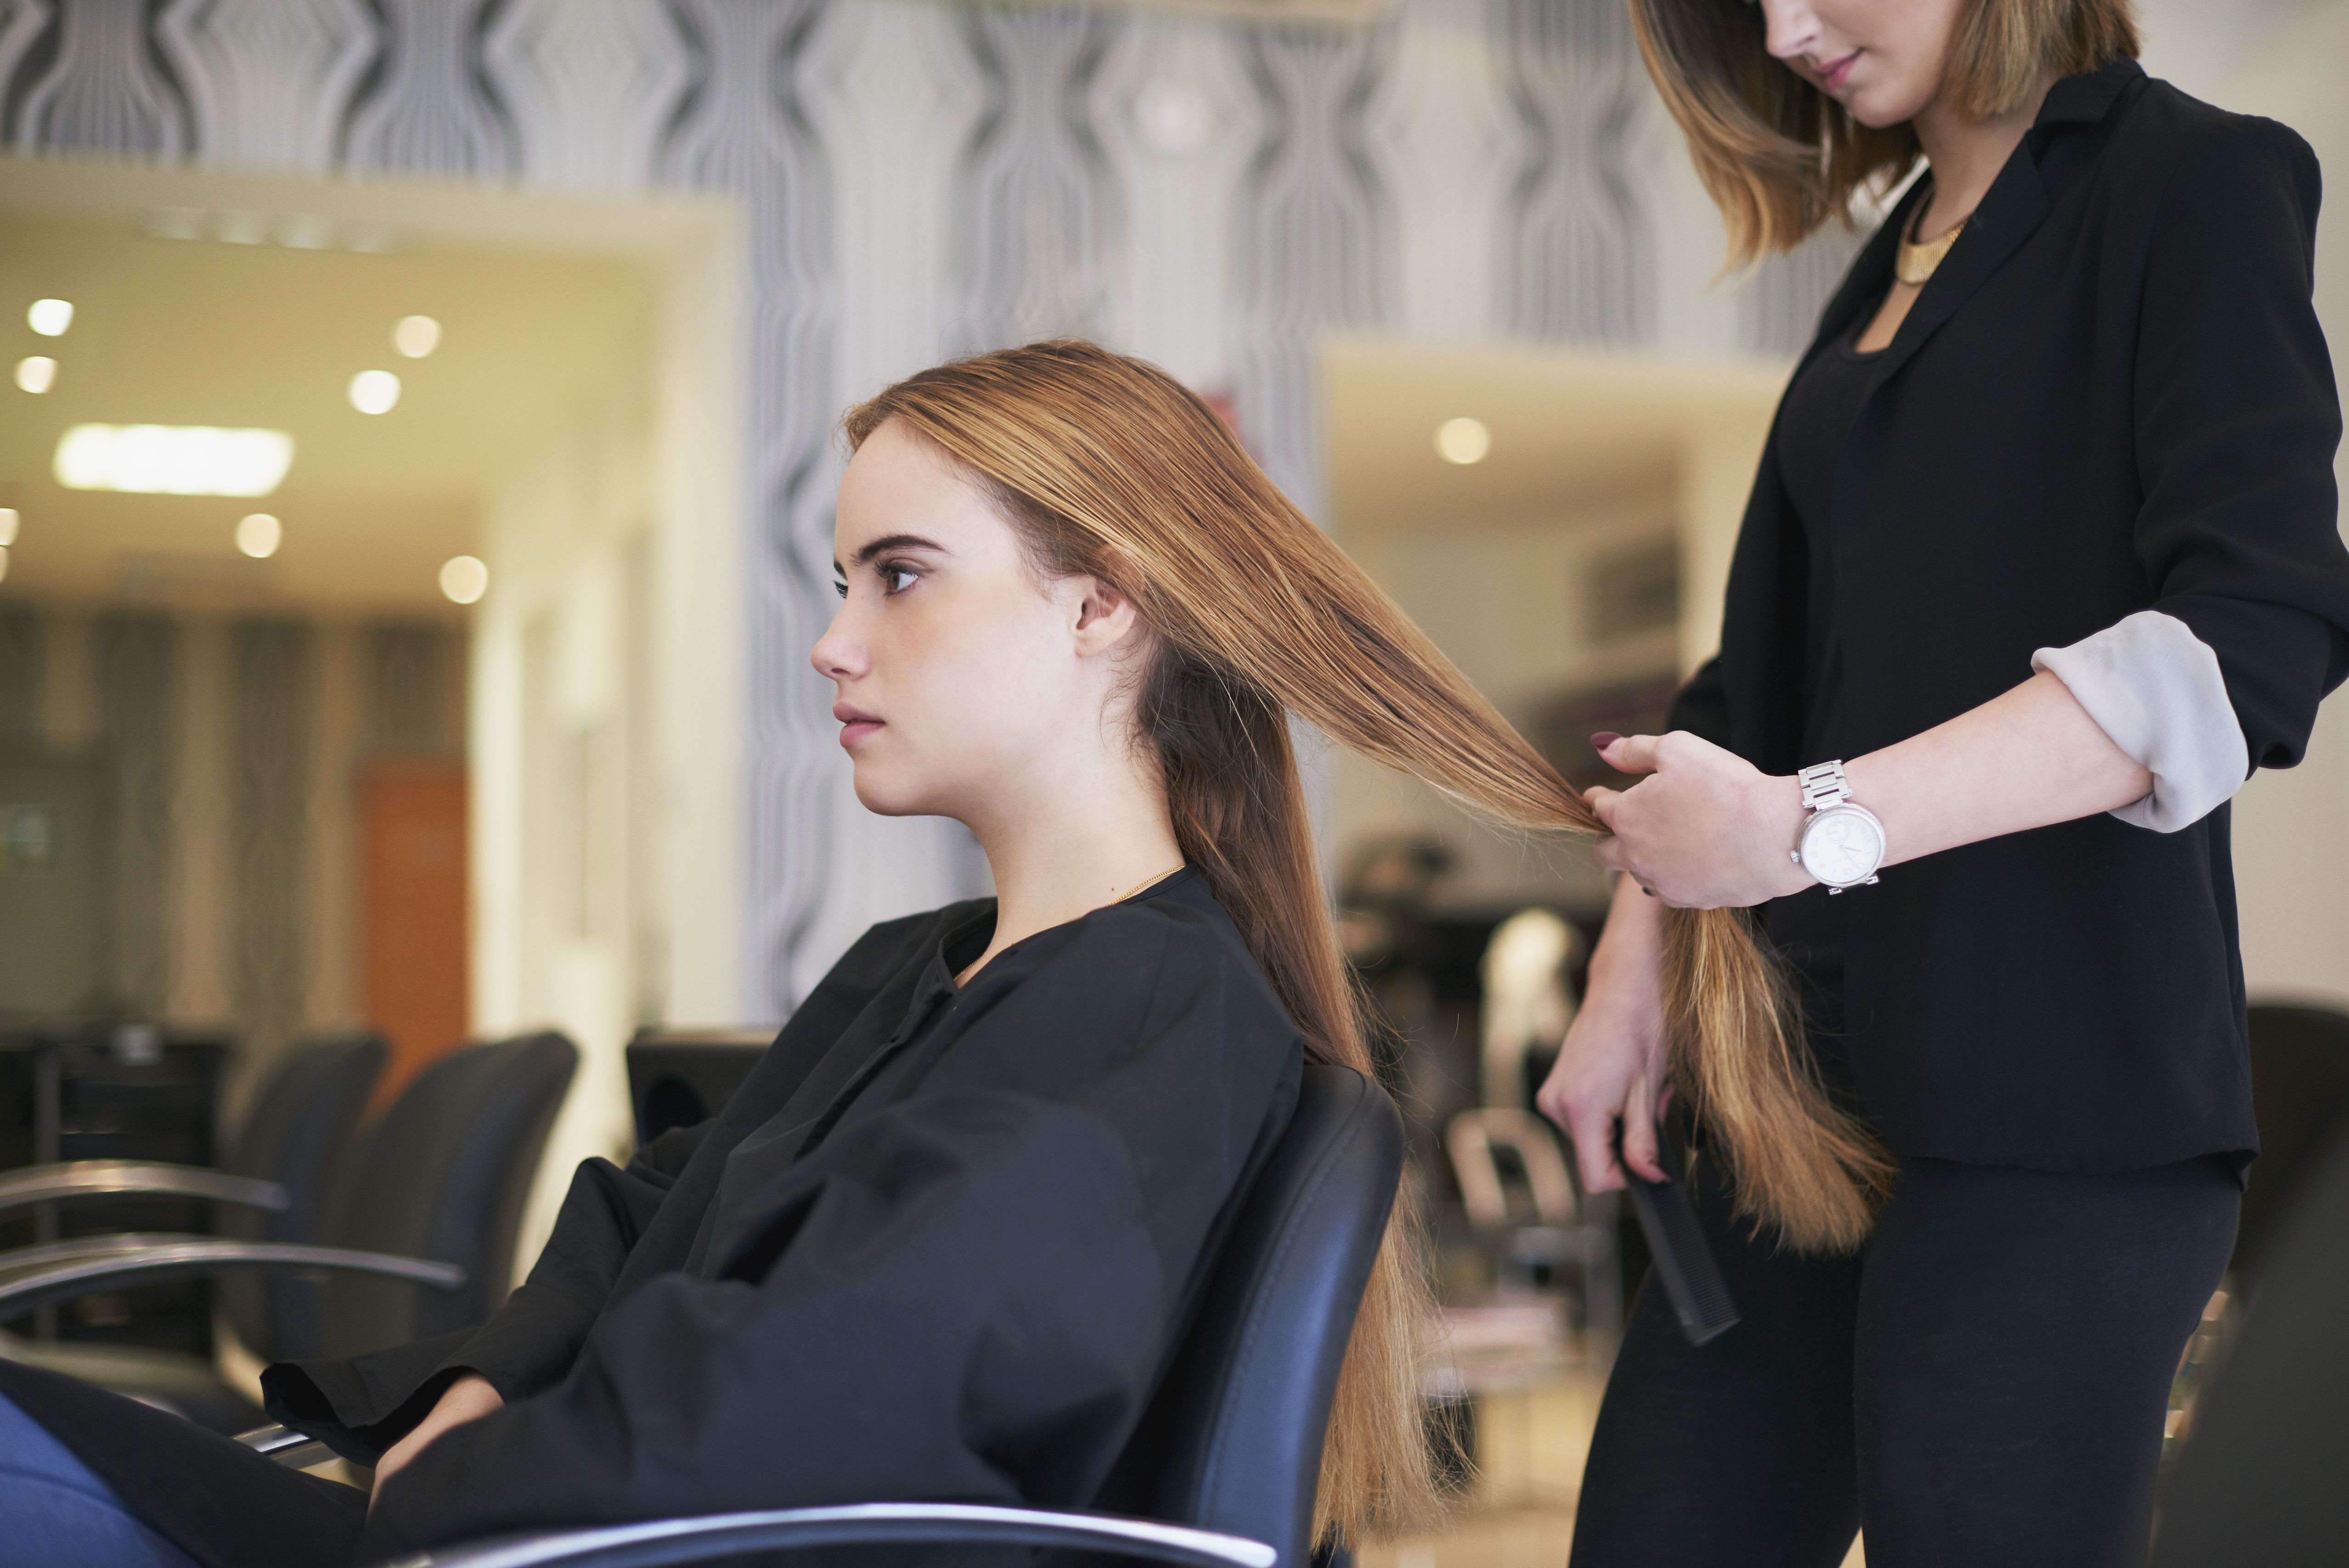 Why You Leave the Salon Disappointed